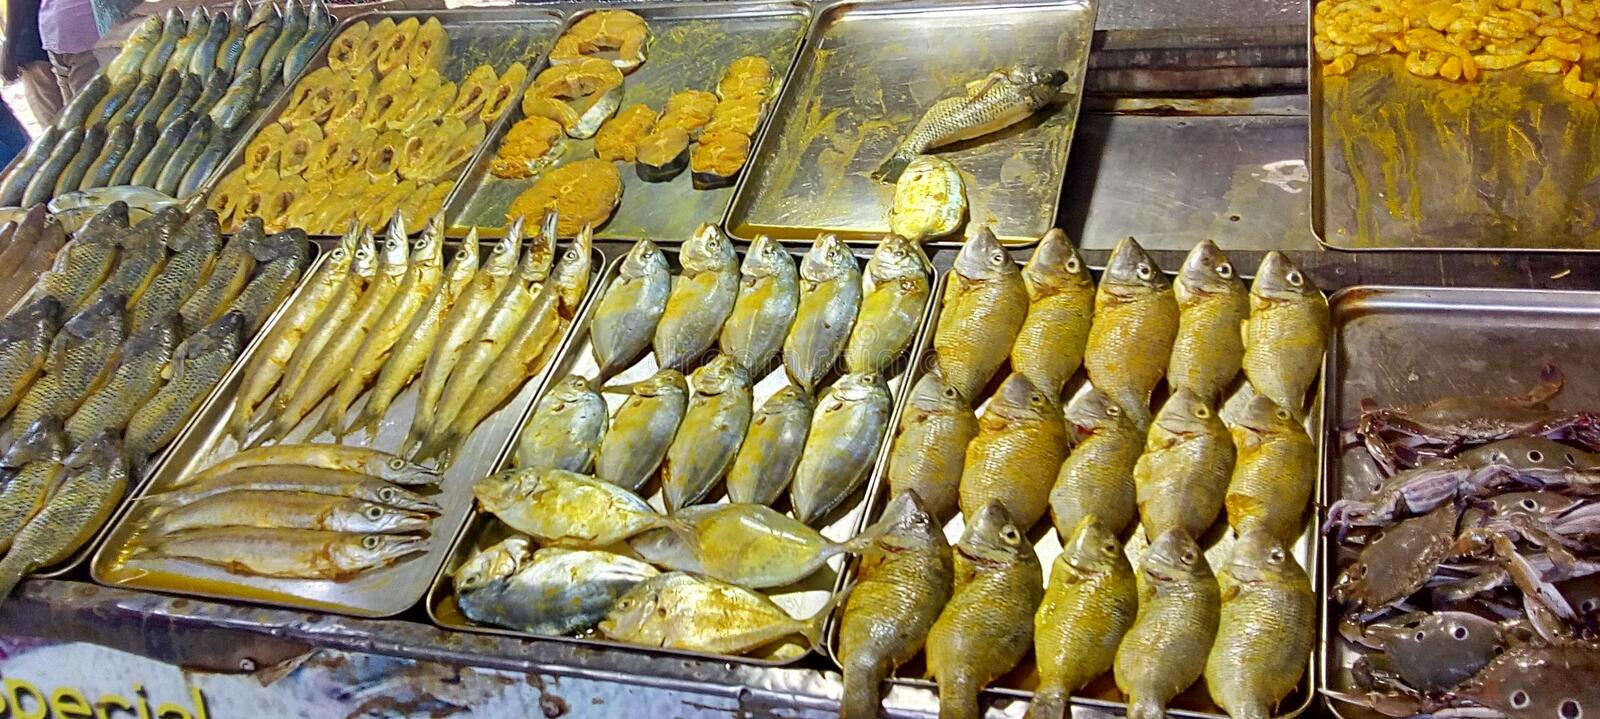 Fish ready for sale royalty free stock photo